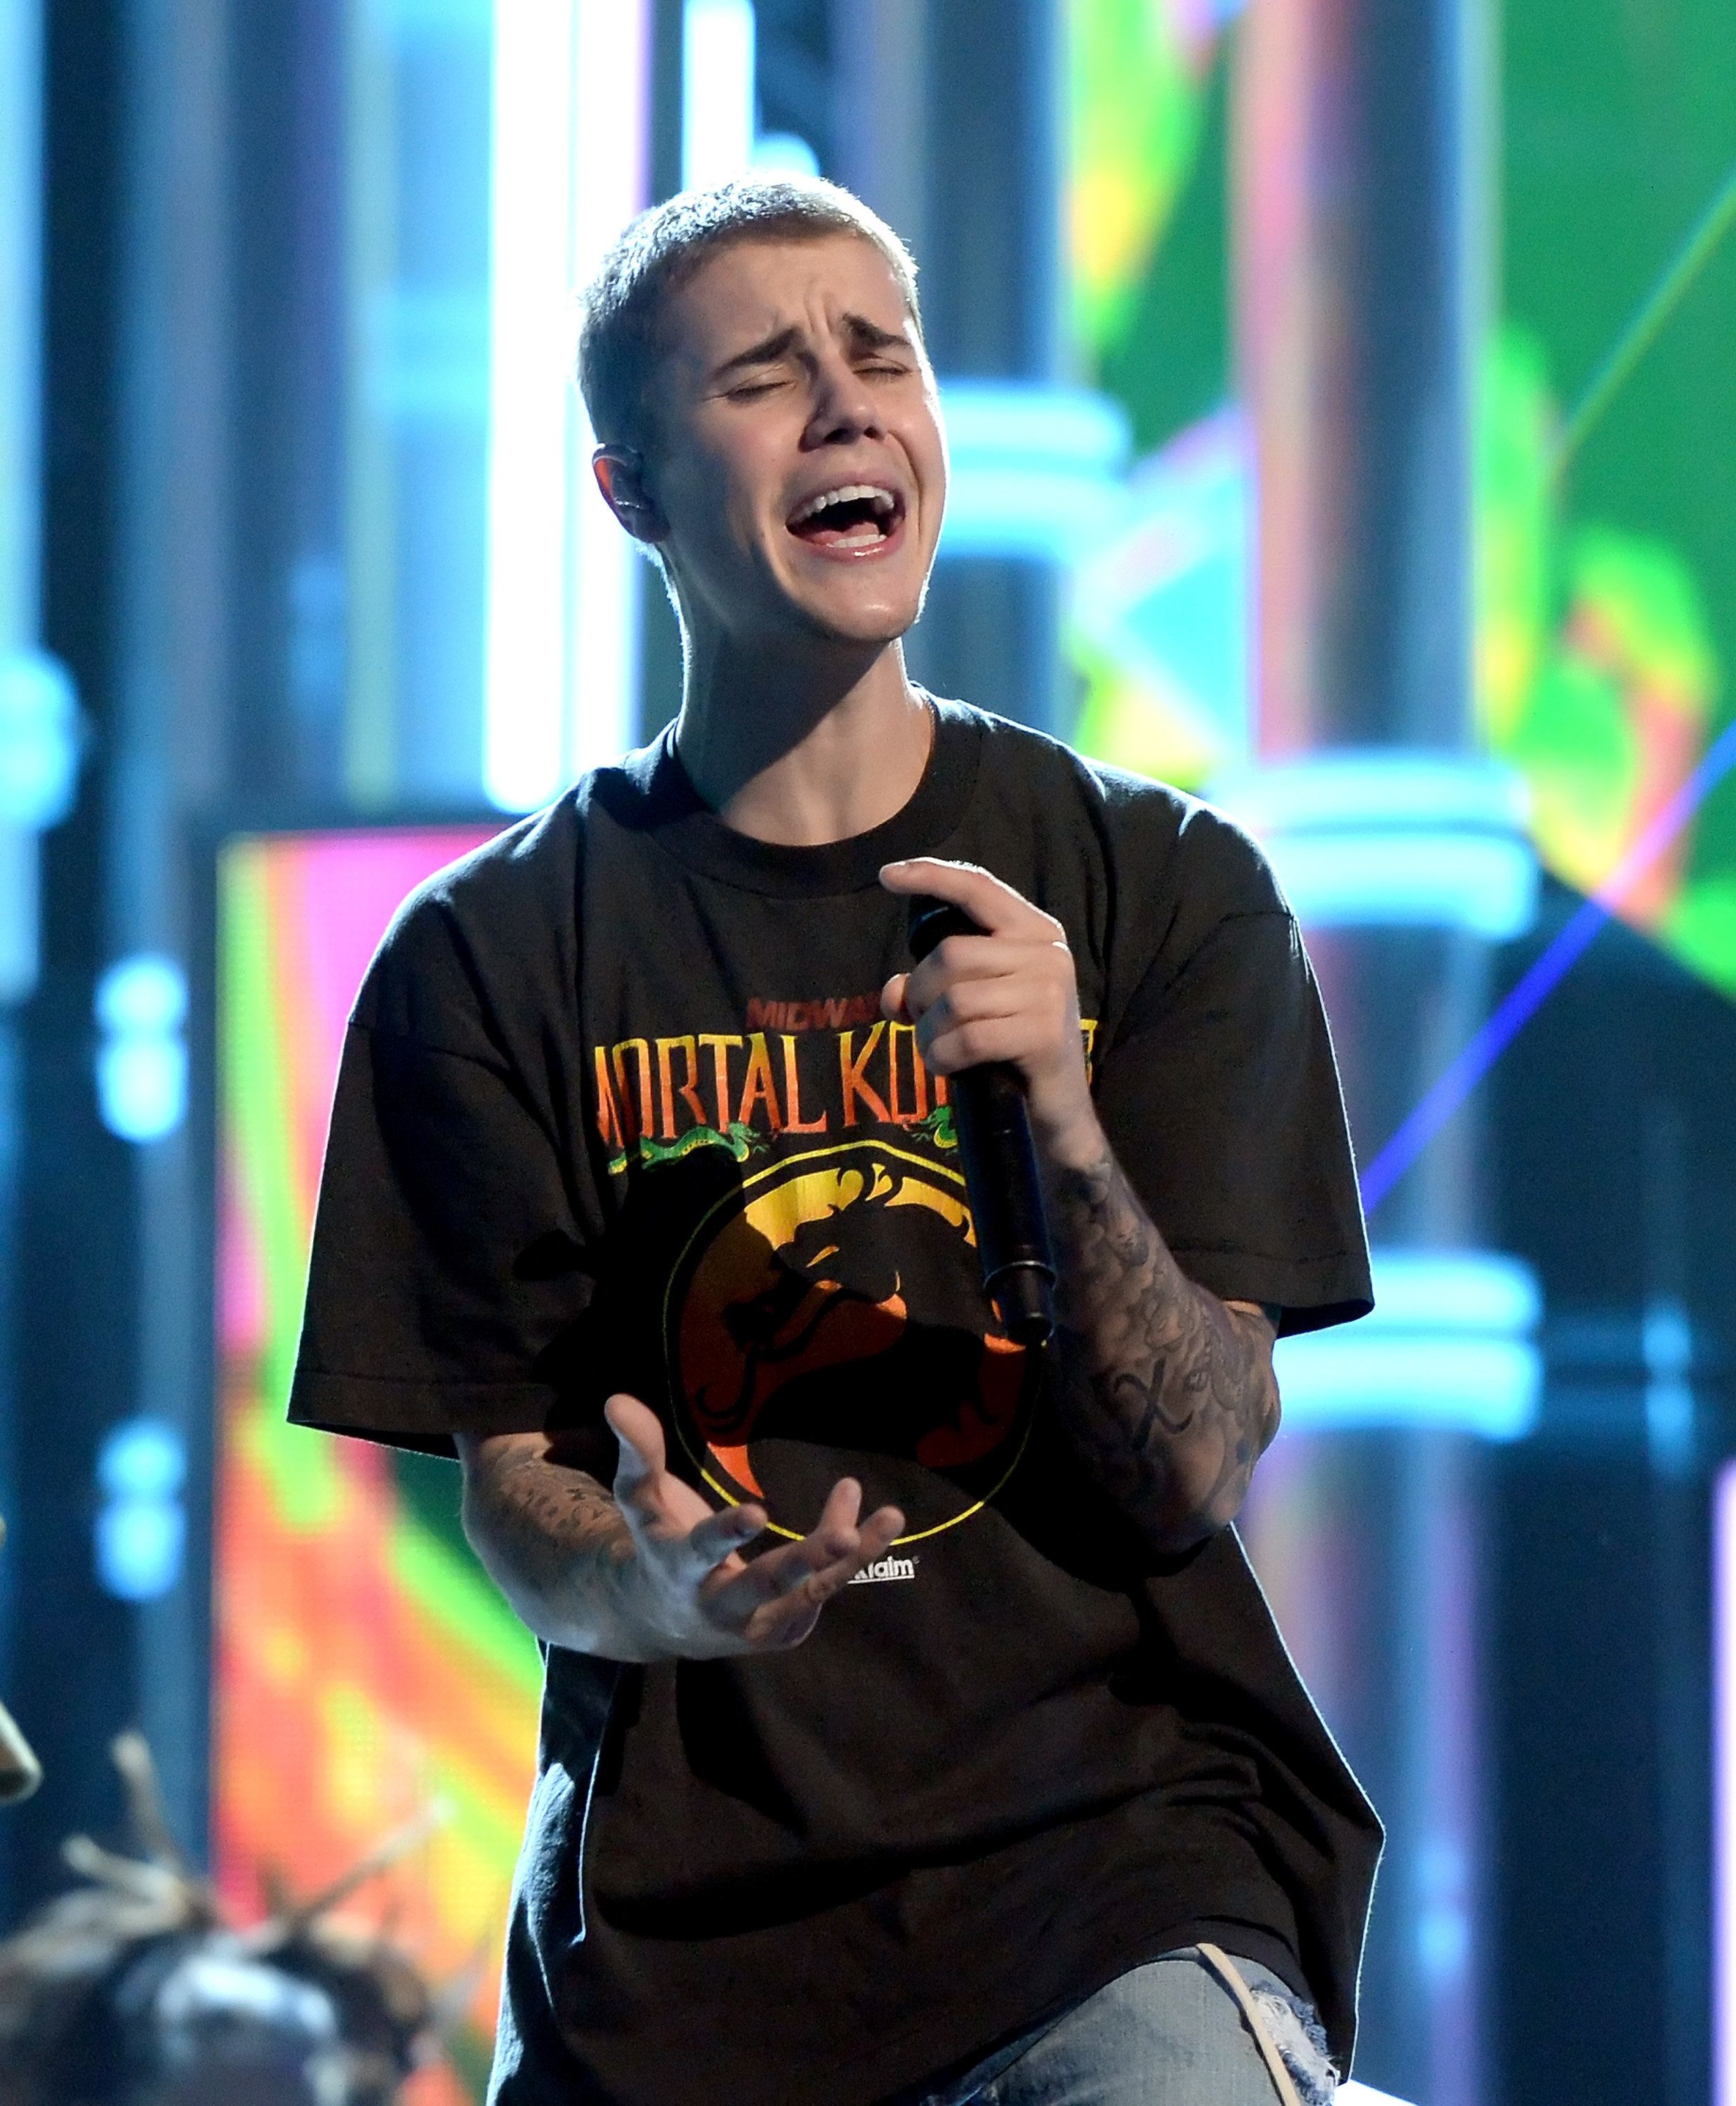 LAS VEGAS, NV - MAY 21:  Singer Justin Bieber rehearses onstage during the 2016 Billboard Music Awards at T-Mobile Arena on May 21, 2016 in Las Vegas, Nevada.  (Photo by Kevin Winter/BBMA2016/Getty Images for dcp)